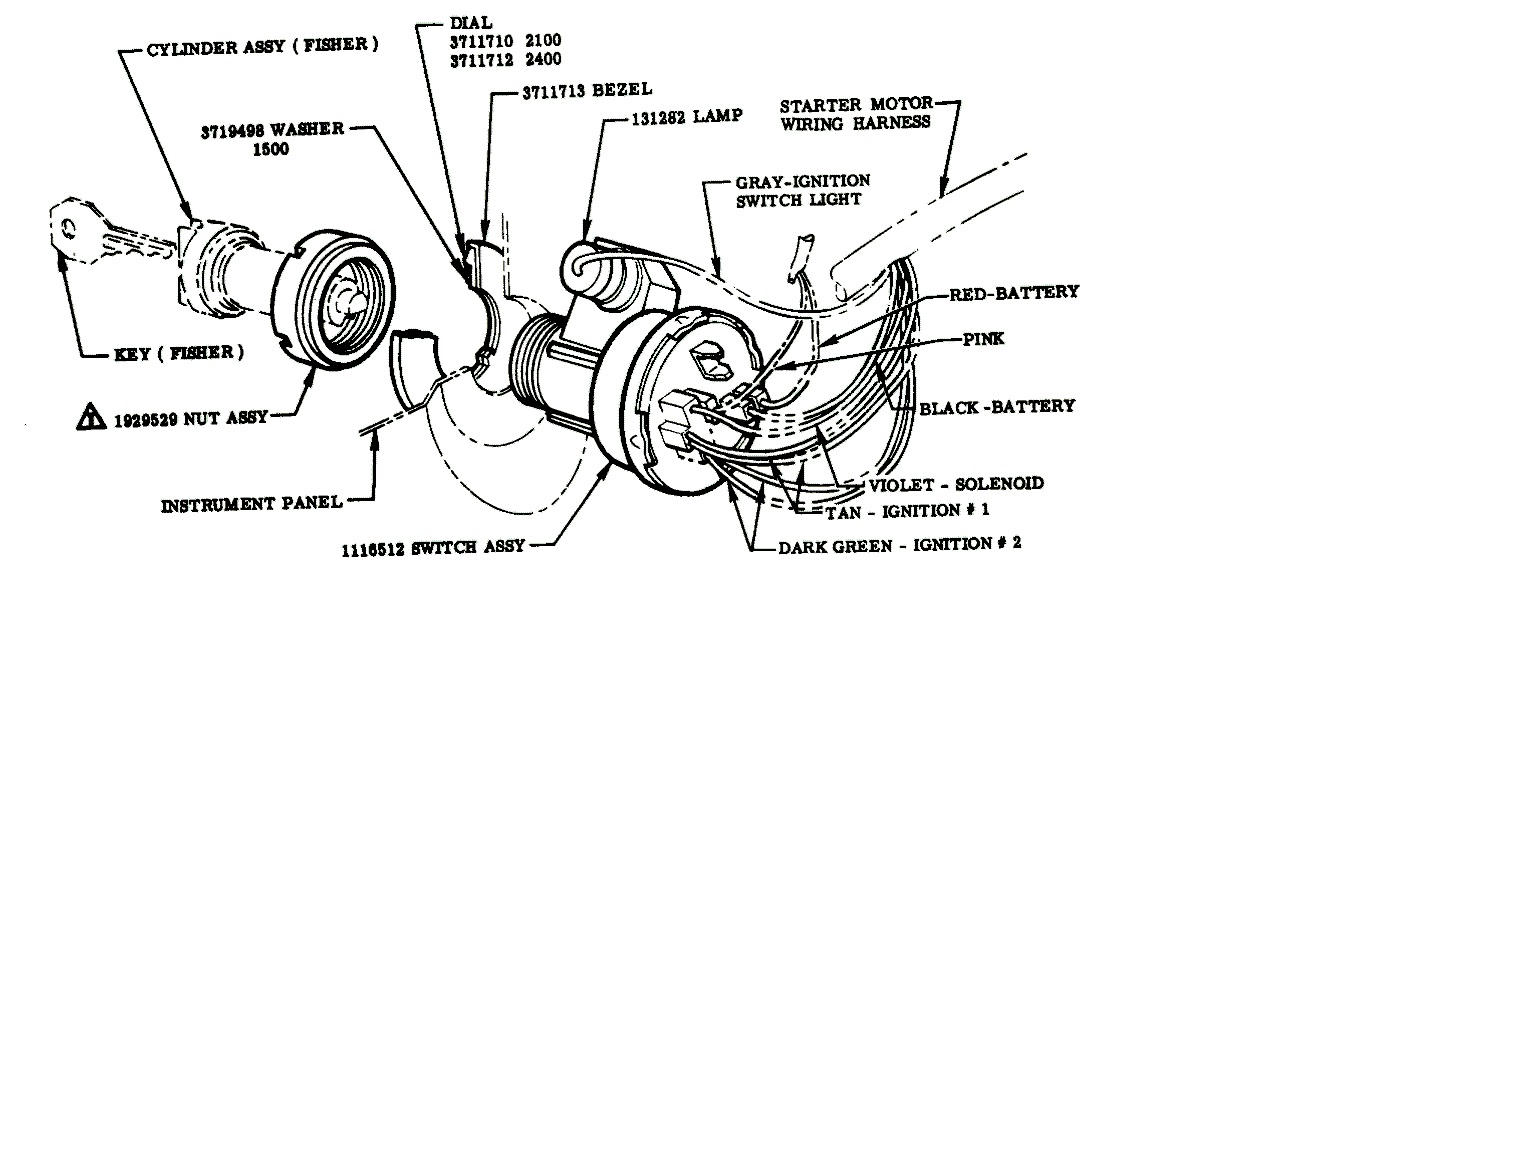 89BAA Auto Ignition Switch Wiring Diagram | Digital Resources on starter switch schematic, fuel gauge schematic, high voltage switch schematic, oil switch schematic, electrical switch schematic, alternator schematic, speed switch schematic, fuel injector schematic, pressure transmitter symbol schematic, transmission schematic, 3 position switch schematic, master cylinder schematic, relay schematic, ignition timing, ignition diagram, fan blade schematic, generator schematic, 3 wire thermocouple wiring schematic, engine schematic, vacuum pump schematic,